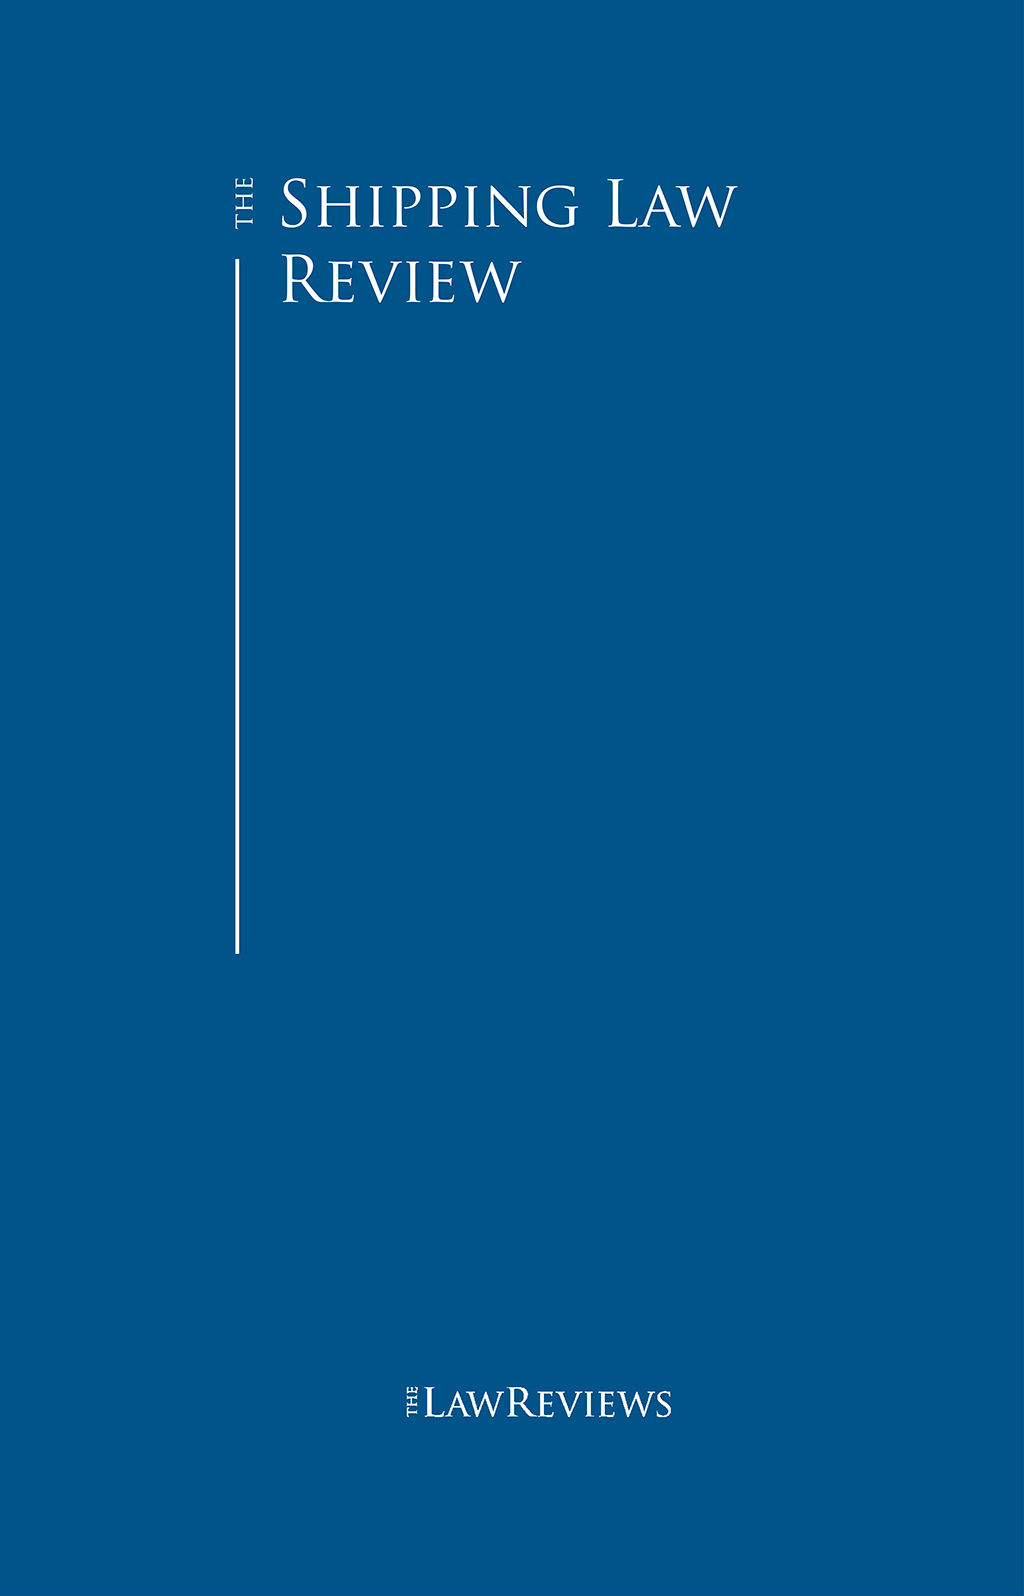 The Shipping Law Review